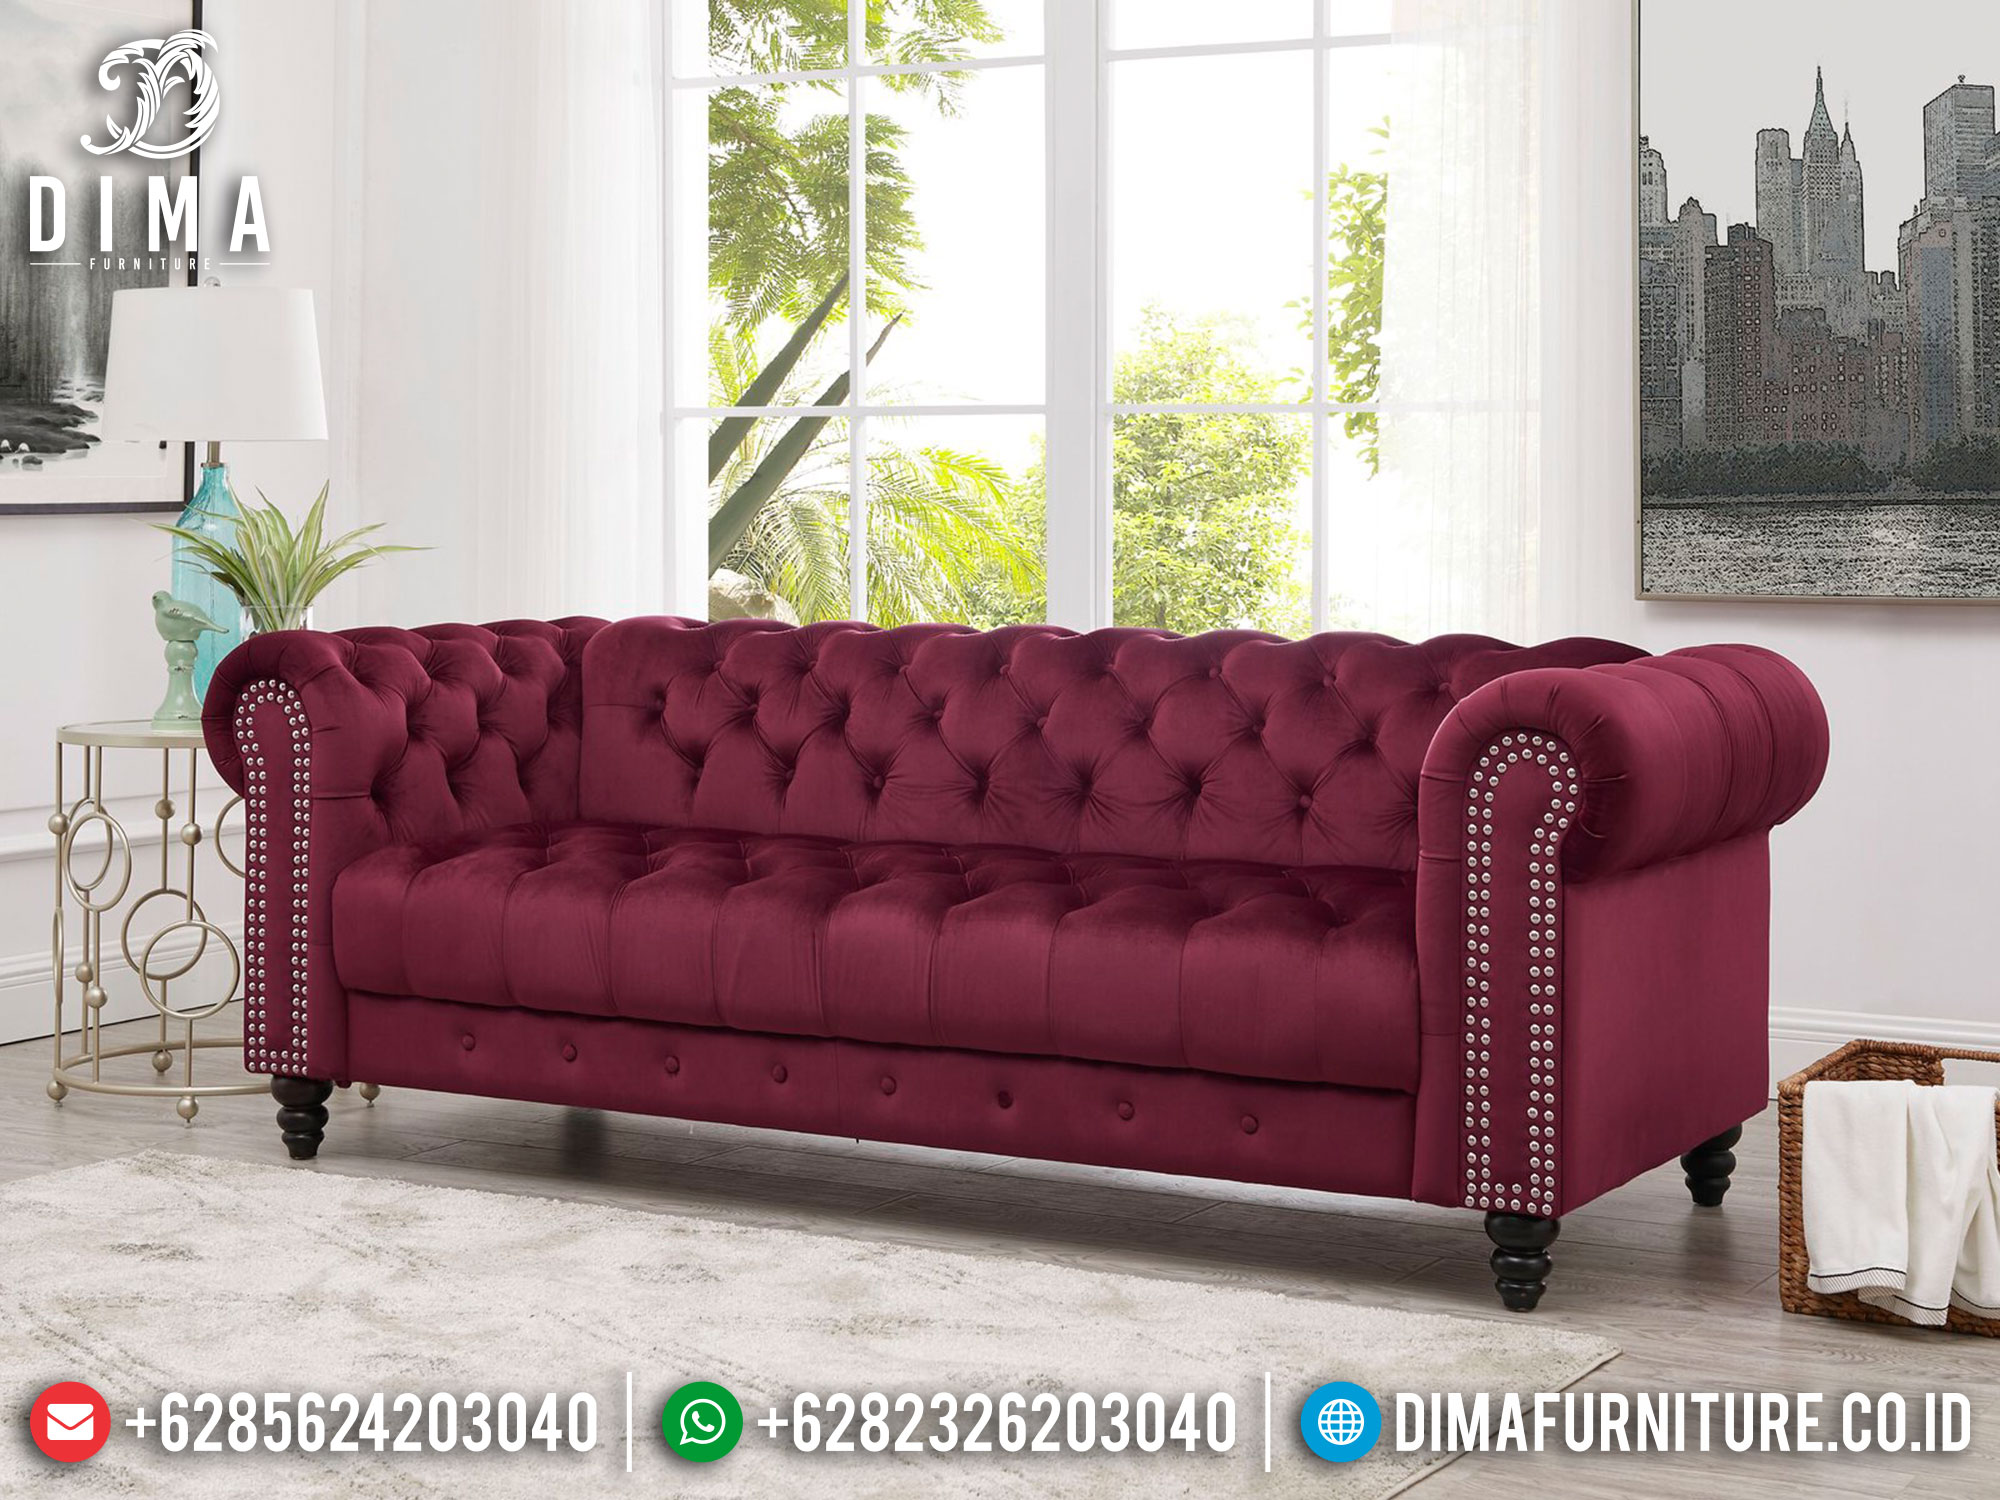 Sofa Tamu Minimalis 3 Seater New Chester Design Luxury Furniture Jepara ST-1322